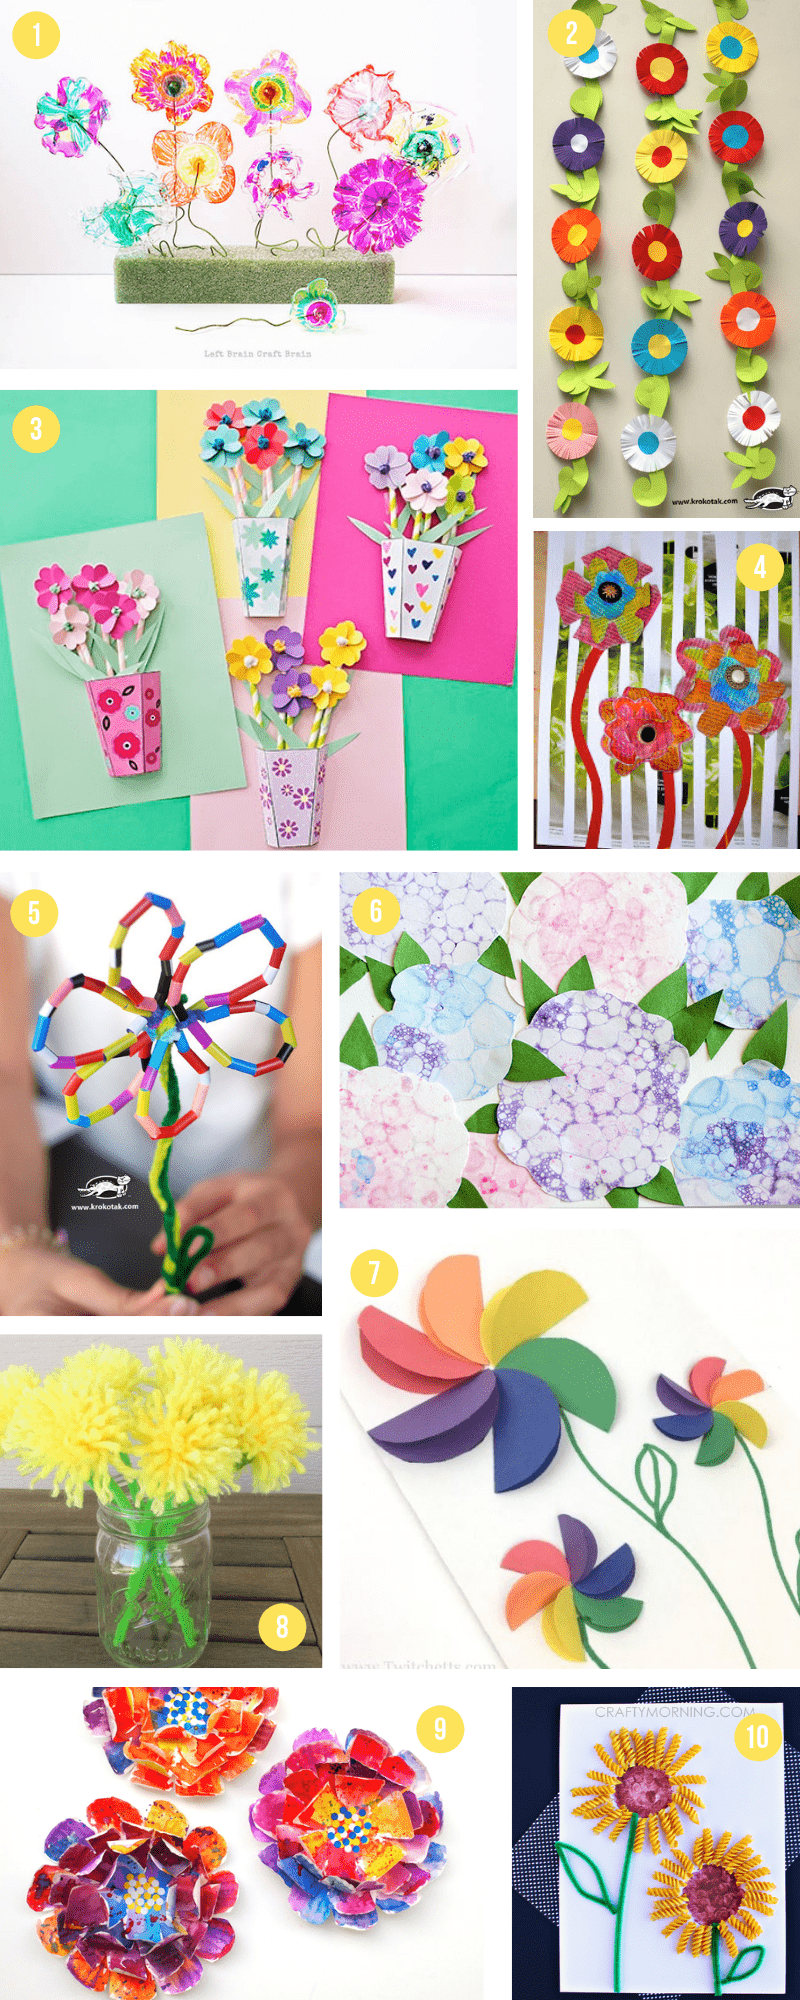 Art Decorating And Crafting The Epic Collection Of Spring Crafts For Kids All The Best Art